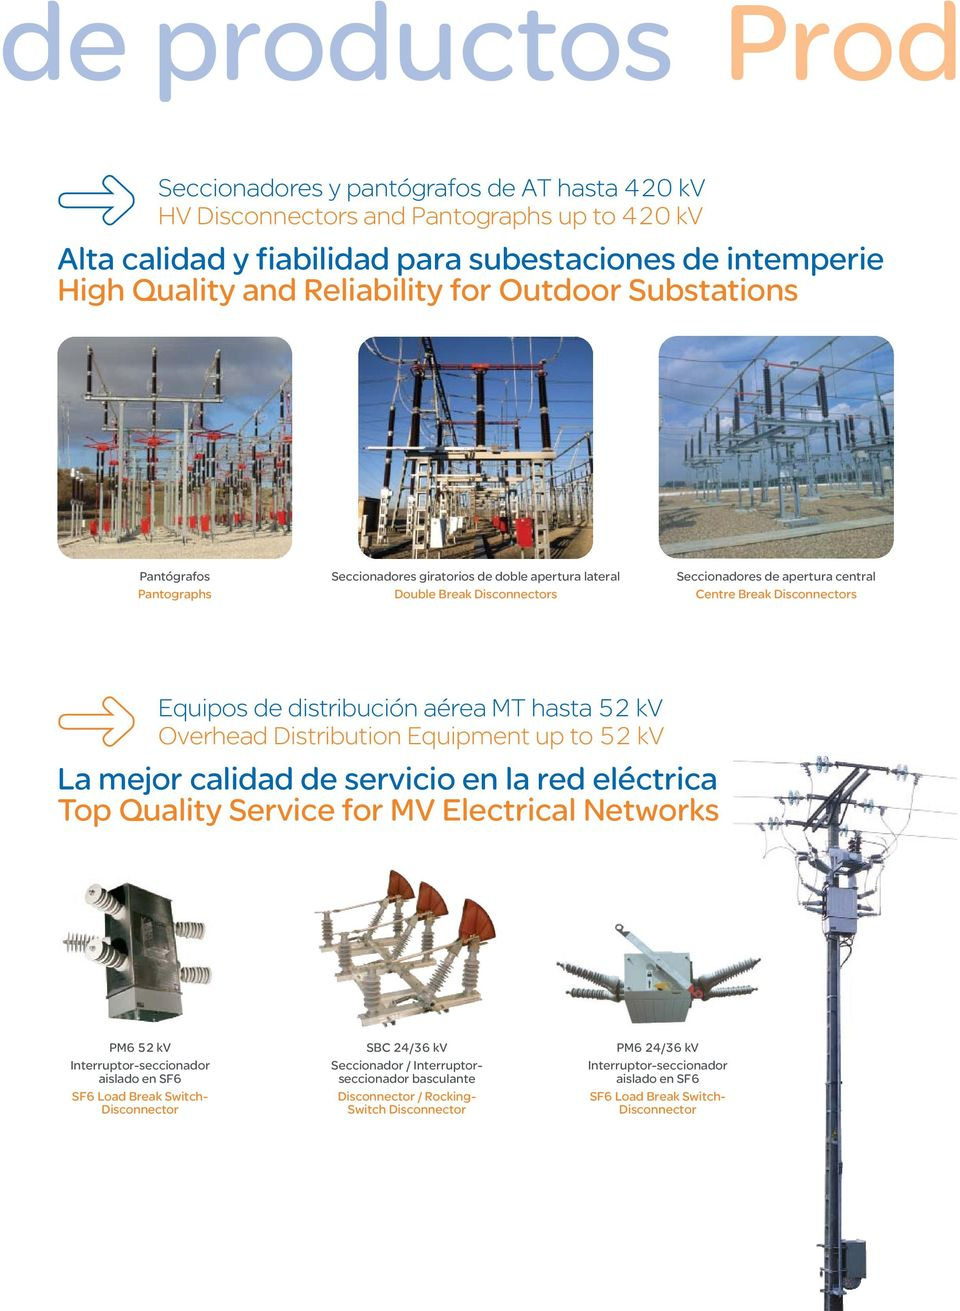 distribución aérea MT hasta 52 kv Overhead Distribution Equipment up to 52 kv La mejor calidad de servicio en la red eléctrica Top Quality Service for MV Electrical Networks PM6 52 kv